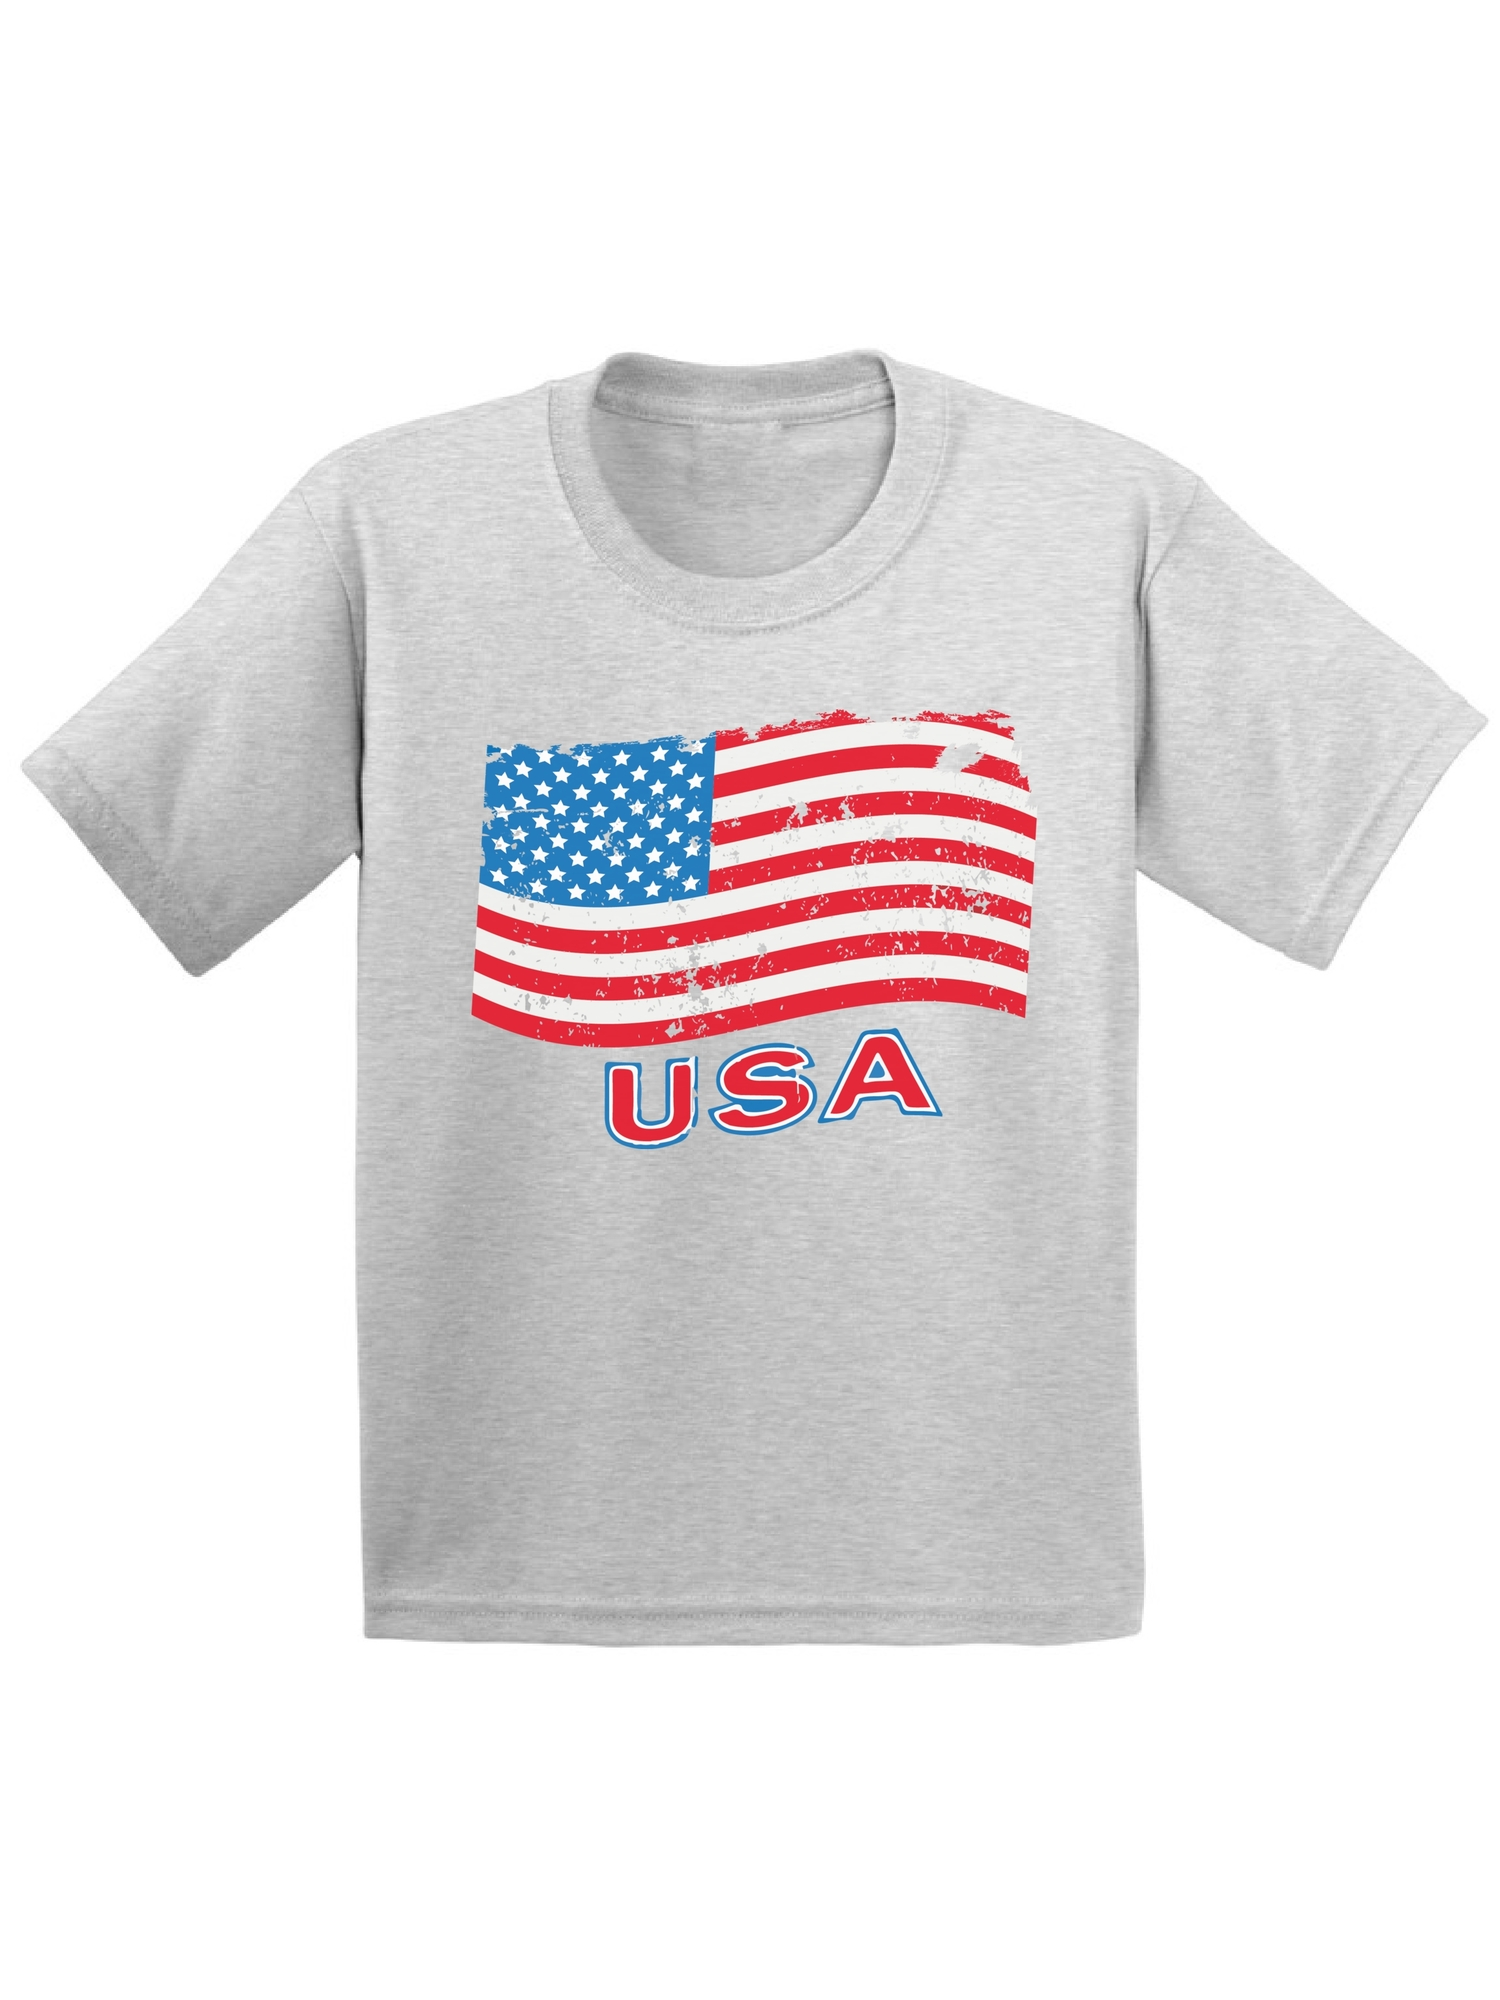 Distressed American Flag Texas Flag Kids Crew Neck Short Sleeve Shirt T-Shirt for Toddlers